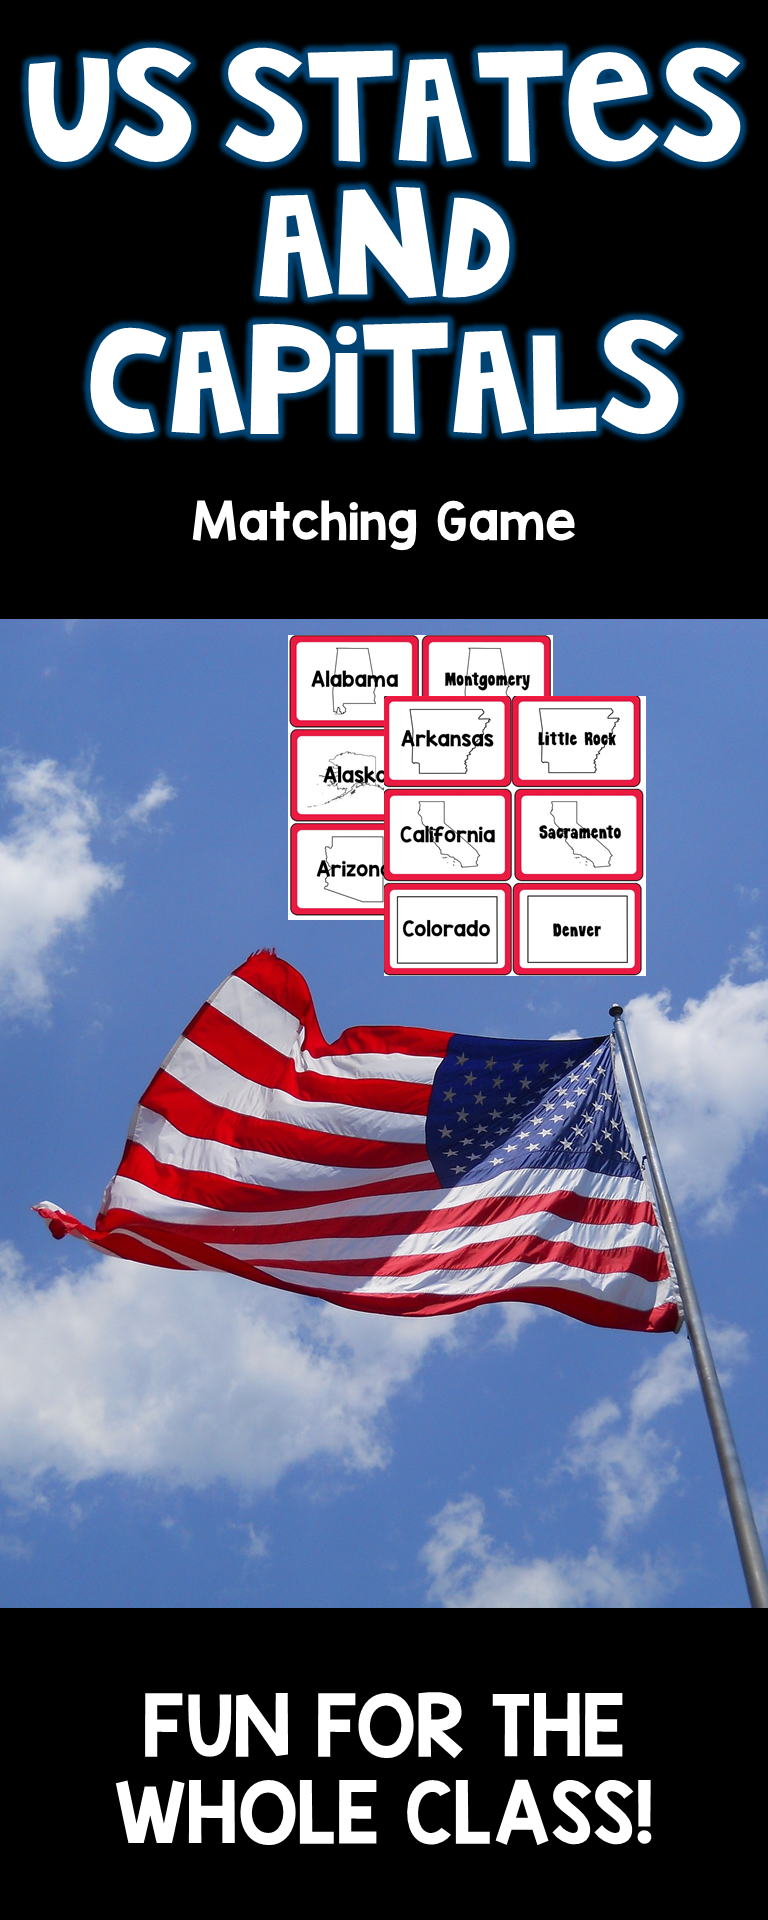 U.S. States & Capitals Matching Game | My TpT Store Products ... on 50 states learn, 50 states curriculum, 50 states program, 50 states power, 50 states resources, 50 states work, 50 states games, 50 states review, 50 states links, 50 states study, 50 states challenge, 50 states method, 50 states information, 50 states pretest, 50 states books, 50 states nature, 50 states homework, 50 states travel, 50 states lesson plan, 50 states vocabulary,